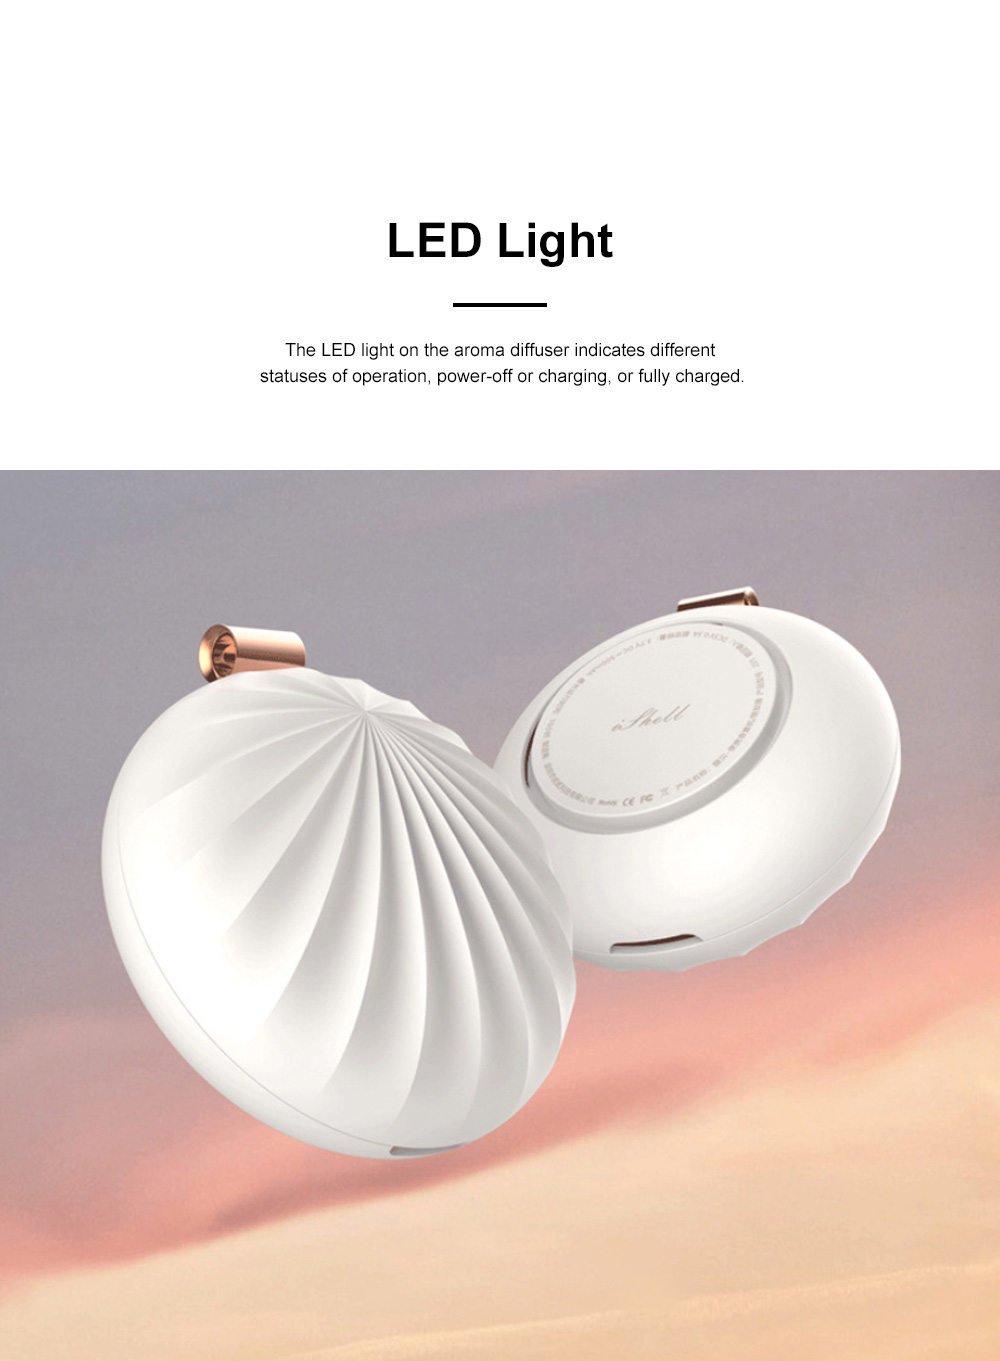 Portable Aroma Diffuser for Mobile Officing Bedroom Use USB Chargeable Aerosol Dispenser Shell Designed Mini Vehicle-mounted Nebulizing Diffuser 4